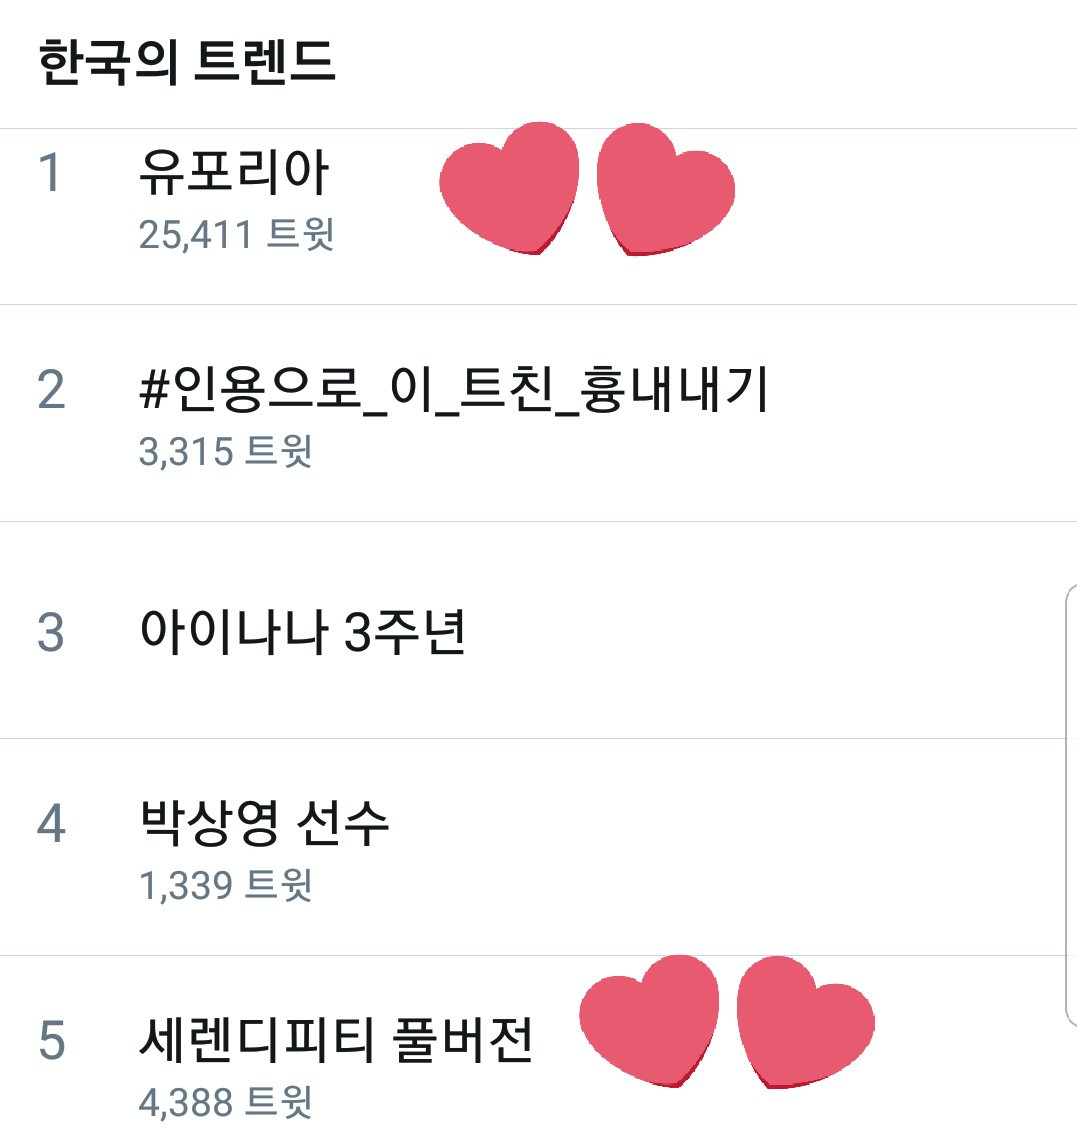 Euphoria currently trending #1 and Serendipity full version #5 in South Korea @BTS_twt<br>http://pic.twitter.com/knzujX210J